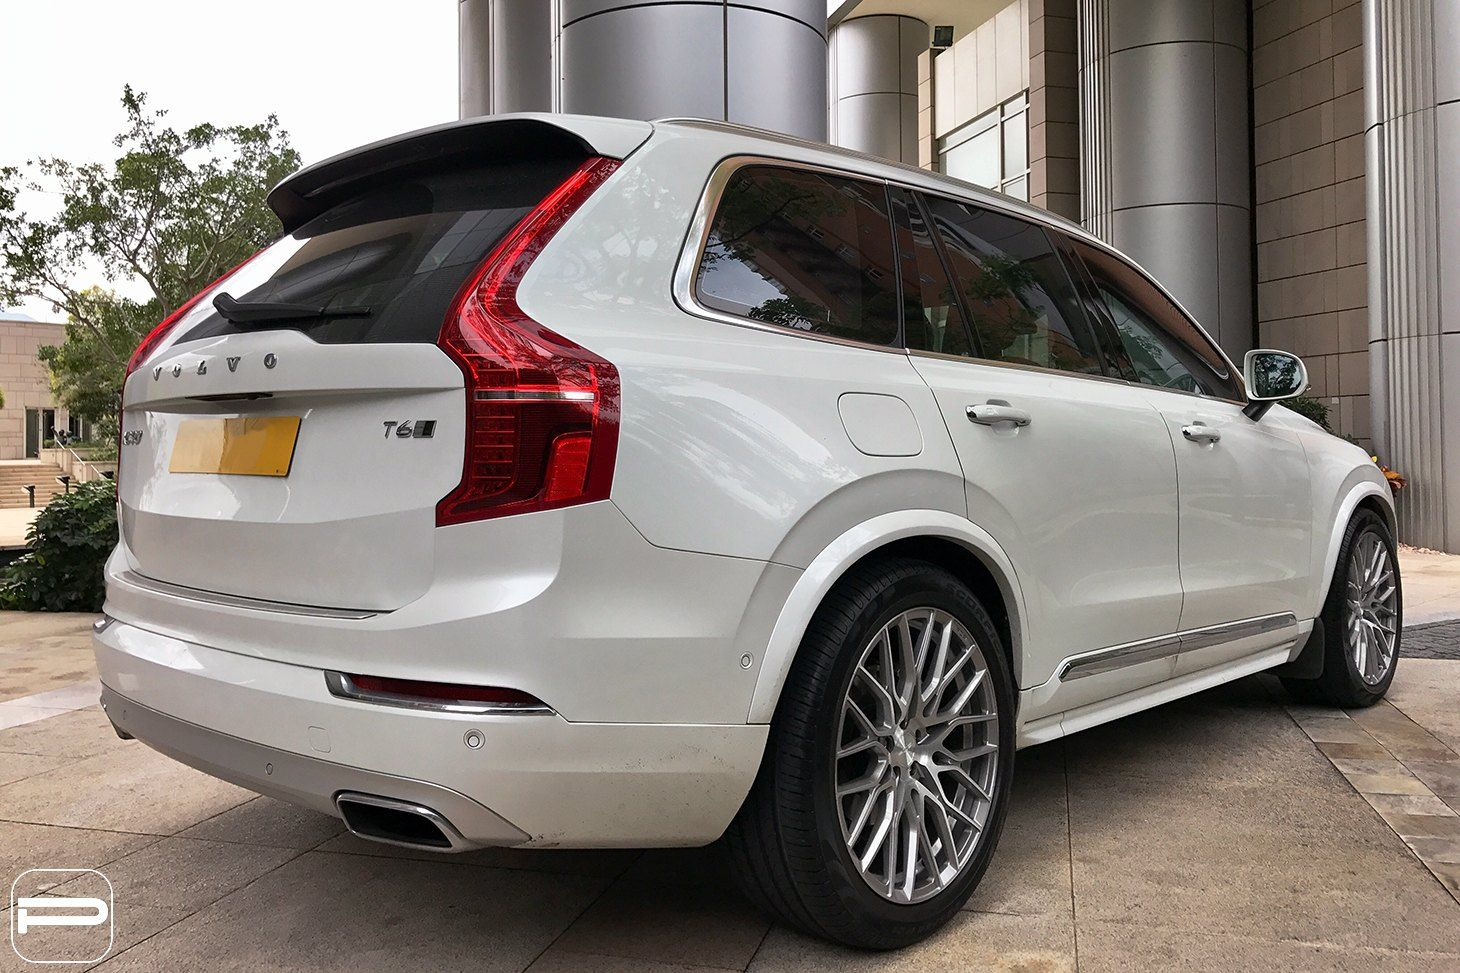 White Volvo Xc90 With Aftermarket Rear Diffuser Photo By Pur Wheels Volvo Xc90 Volvo Volvo Xc60